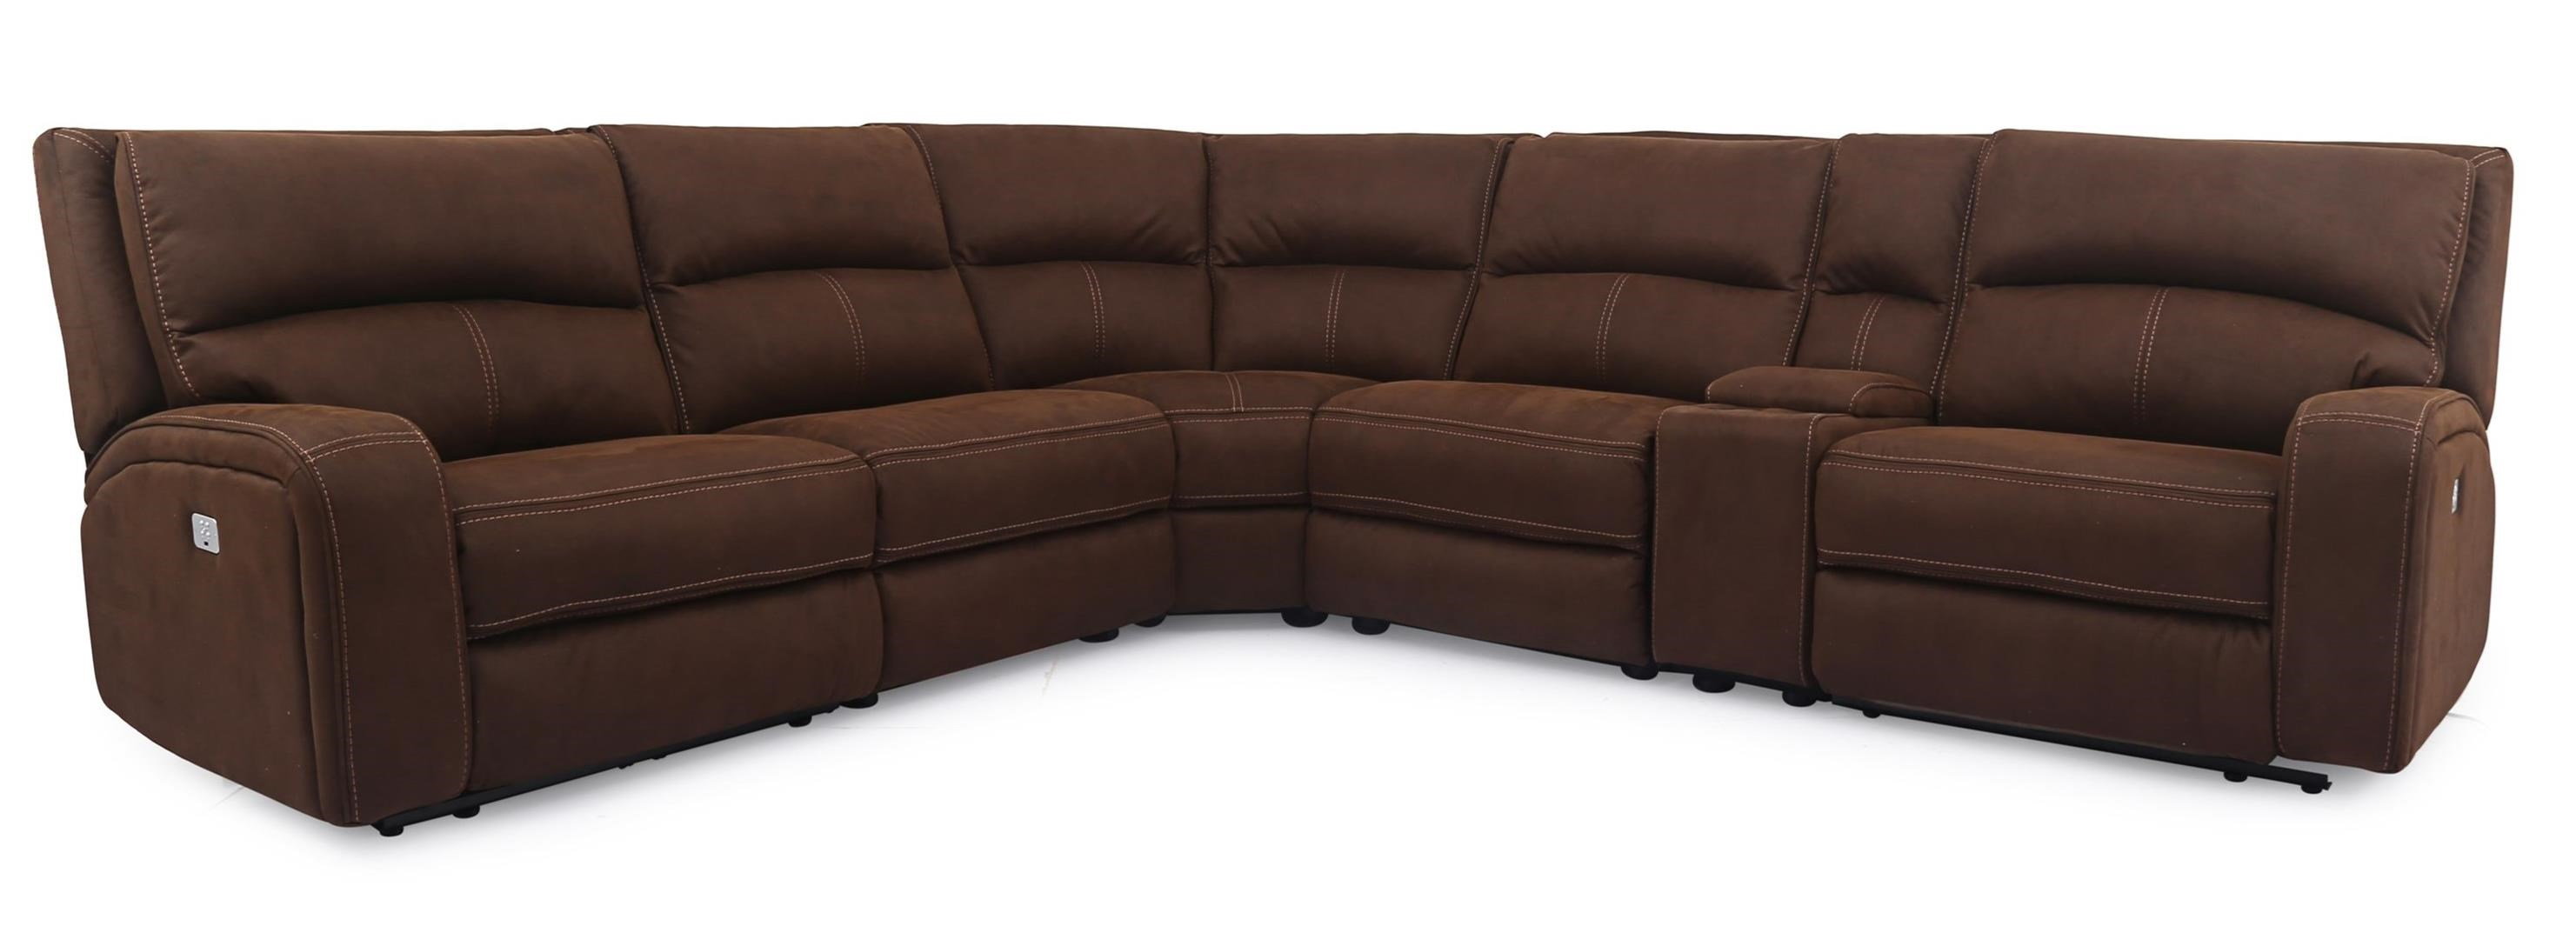 Triple Play Sectional